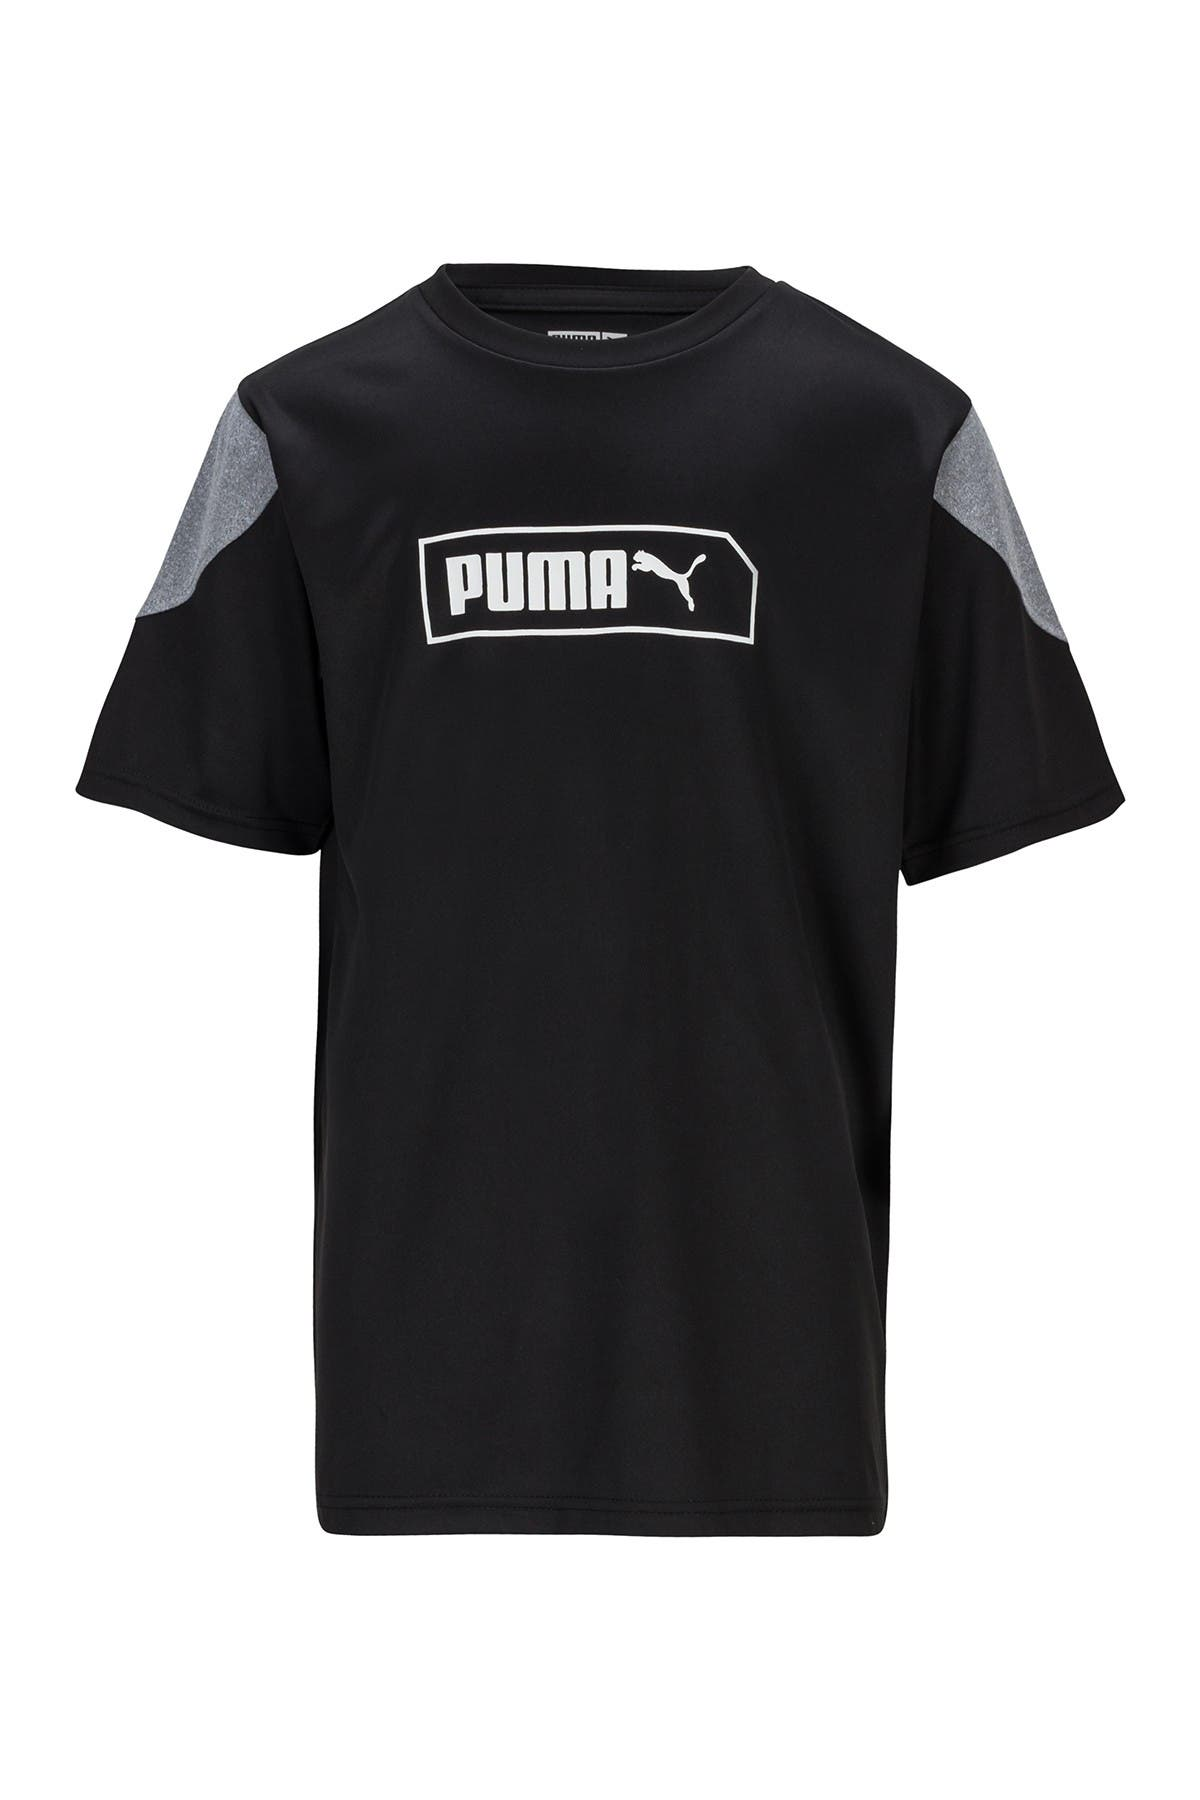 Image of PUMA Nutility Pack Poly Interlock Tee